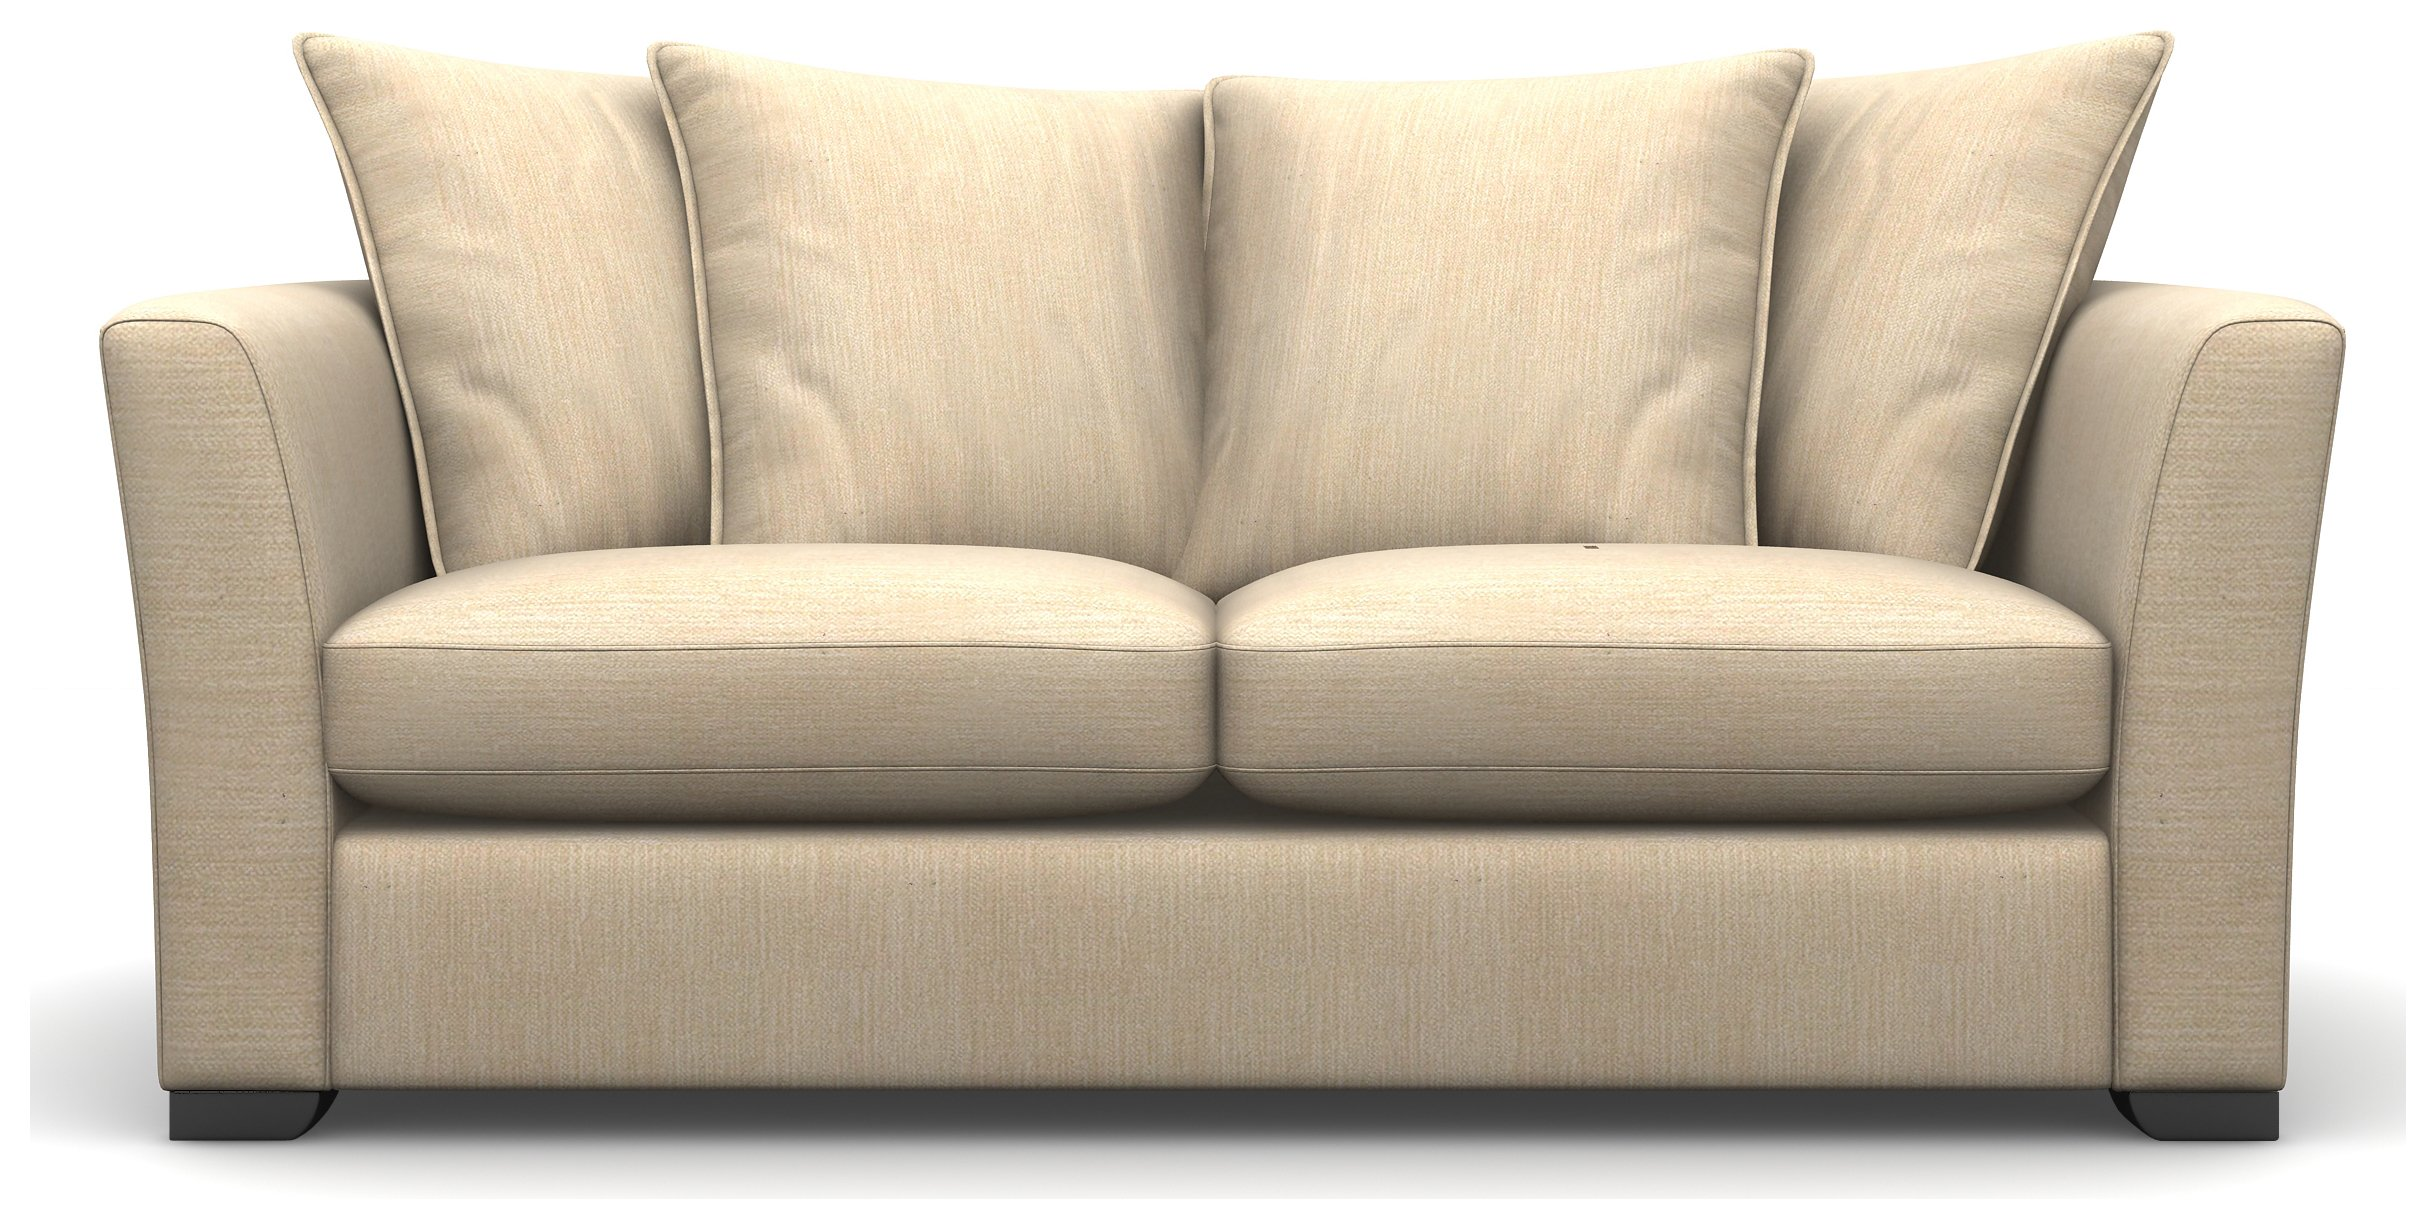 Heart of House Libby 2 Seater Fabric Sofa - Beige.